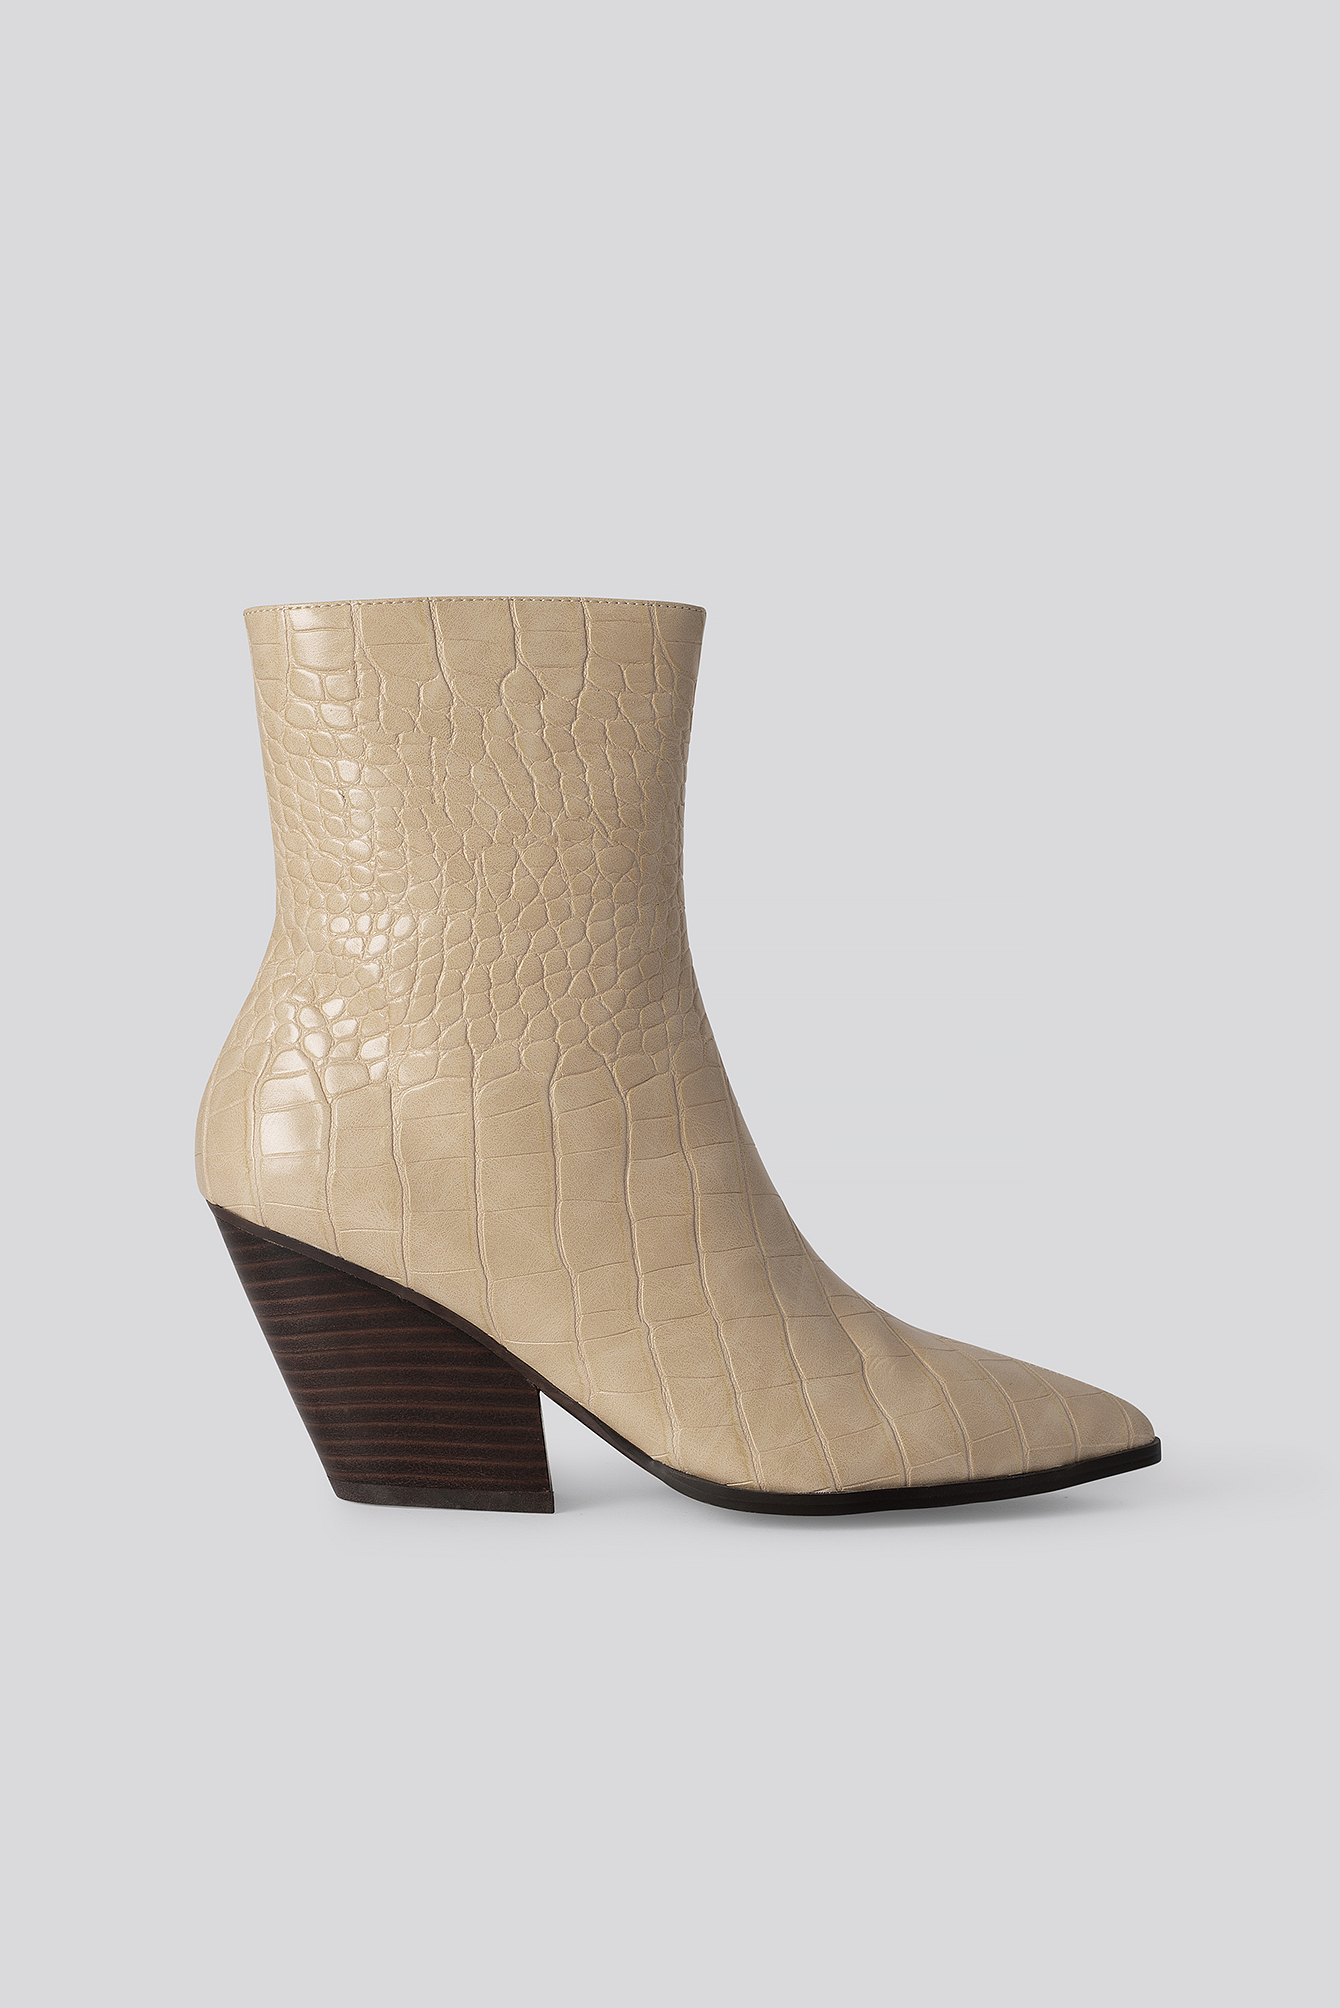 na-kd shoes -  Croc Western Heel Pointy Boots - Beige